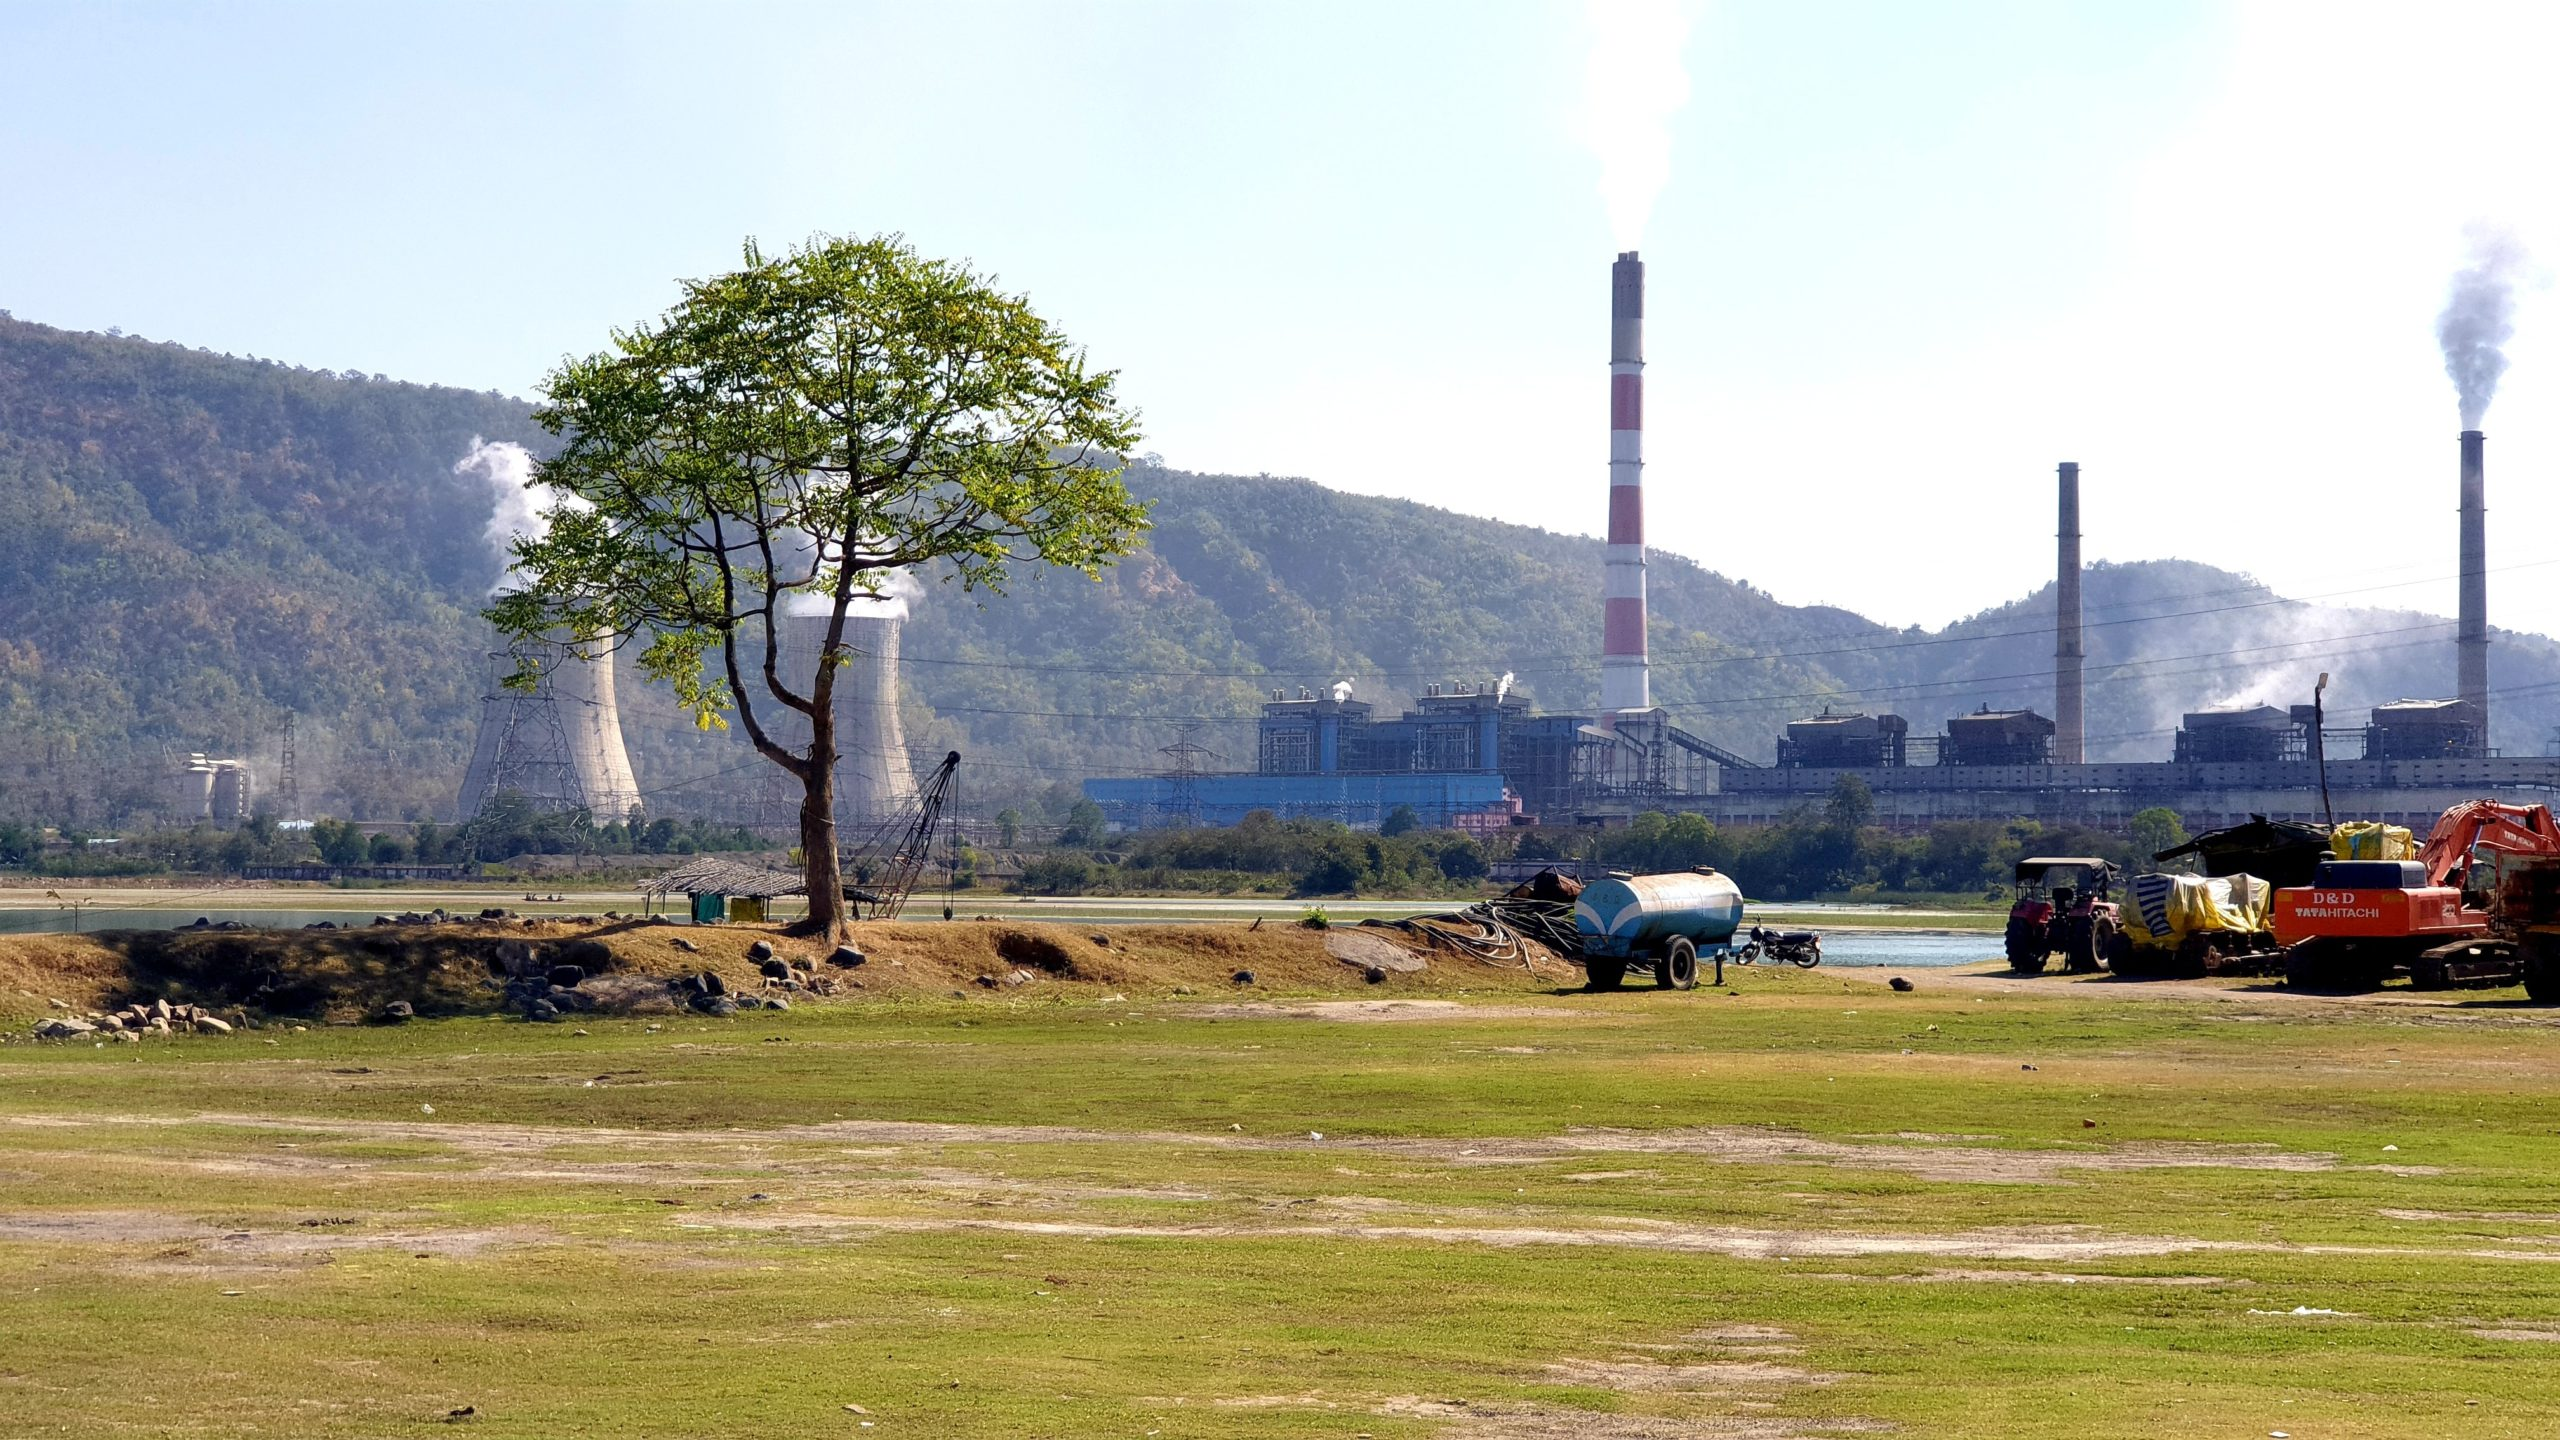 The analysis by the parliamentary panel reveals that the execution of the majority of thermal power plants across India was delayed and they faced massive cost overruns. Photo by Sheikh Sohel/Unsplash.